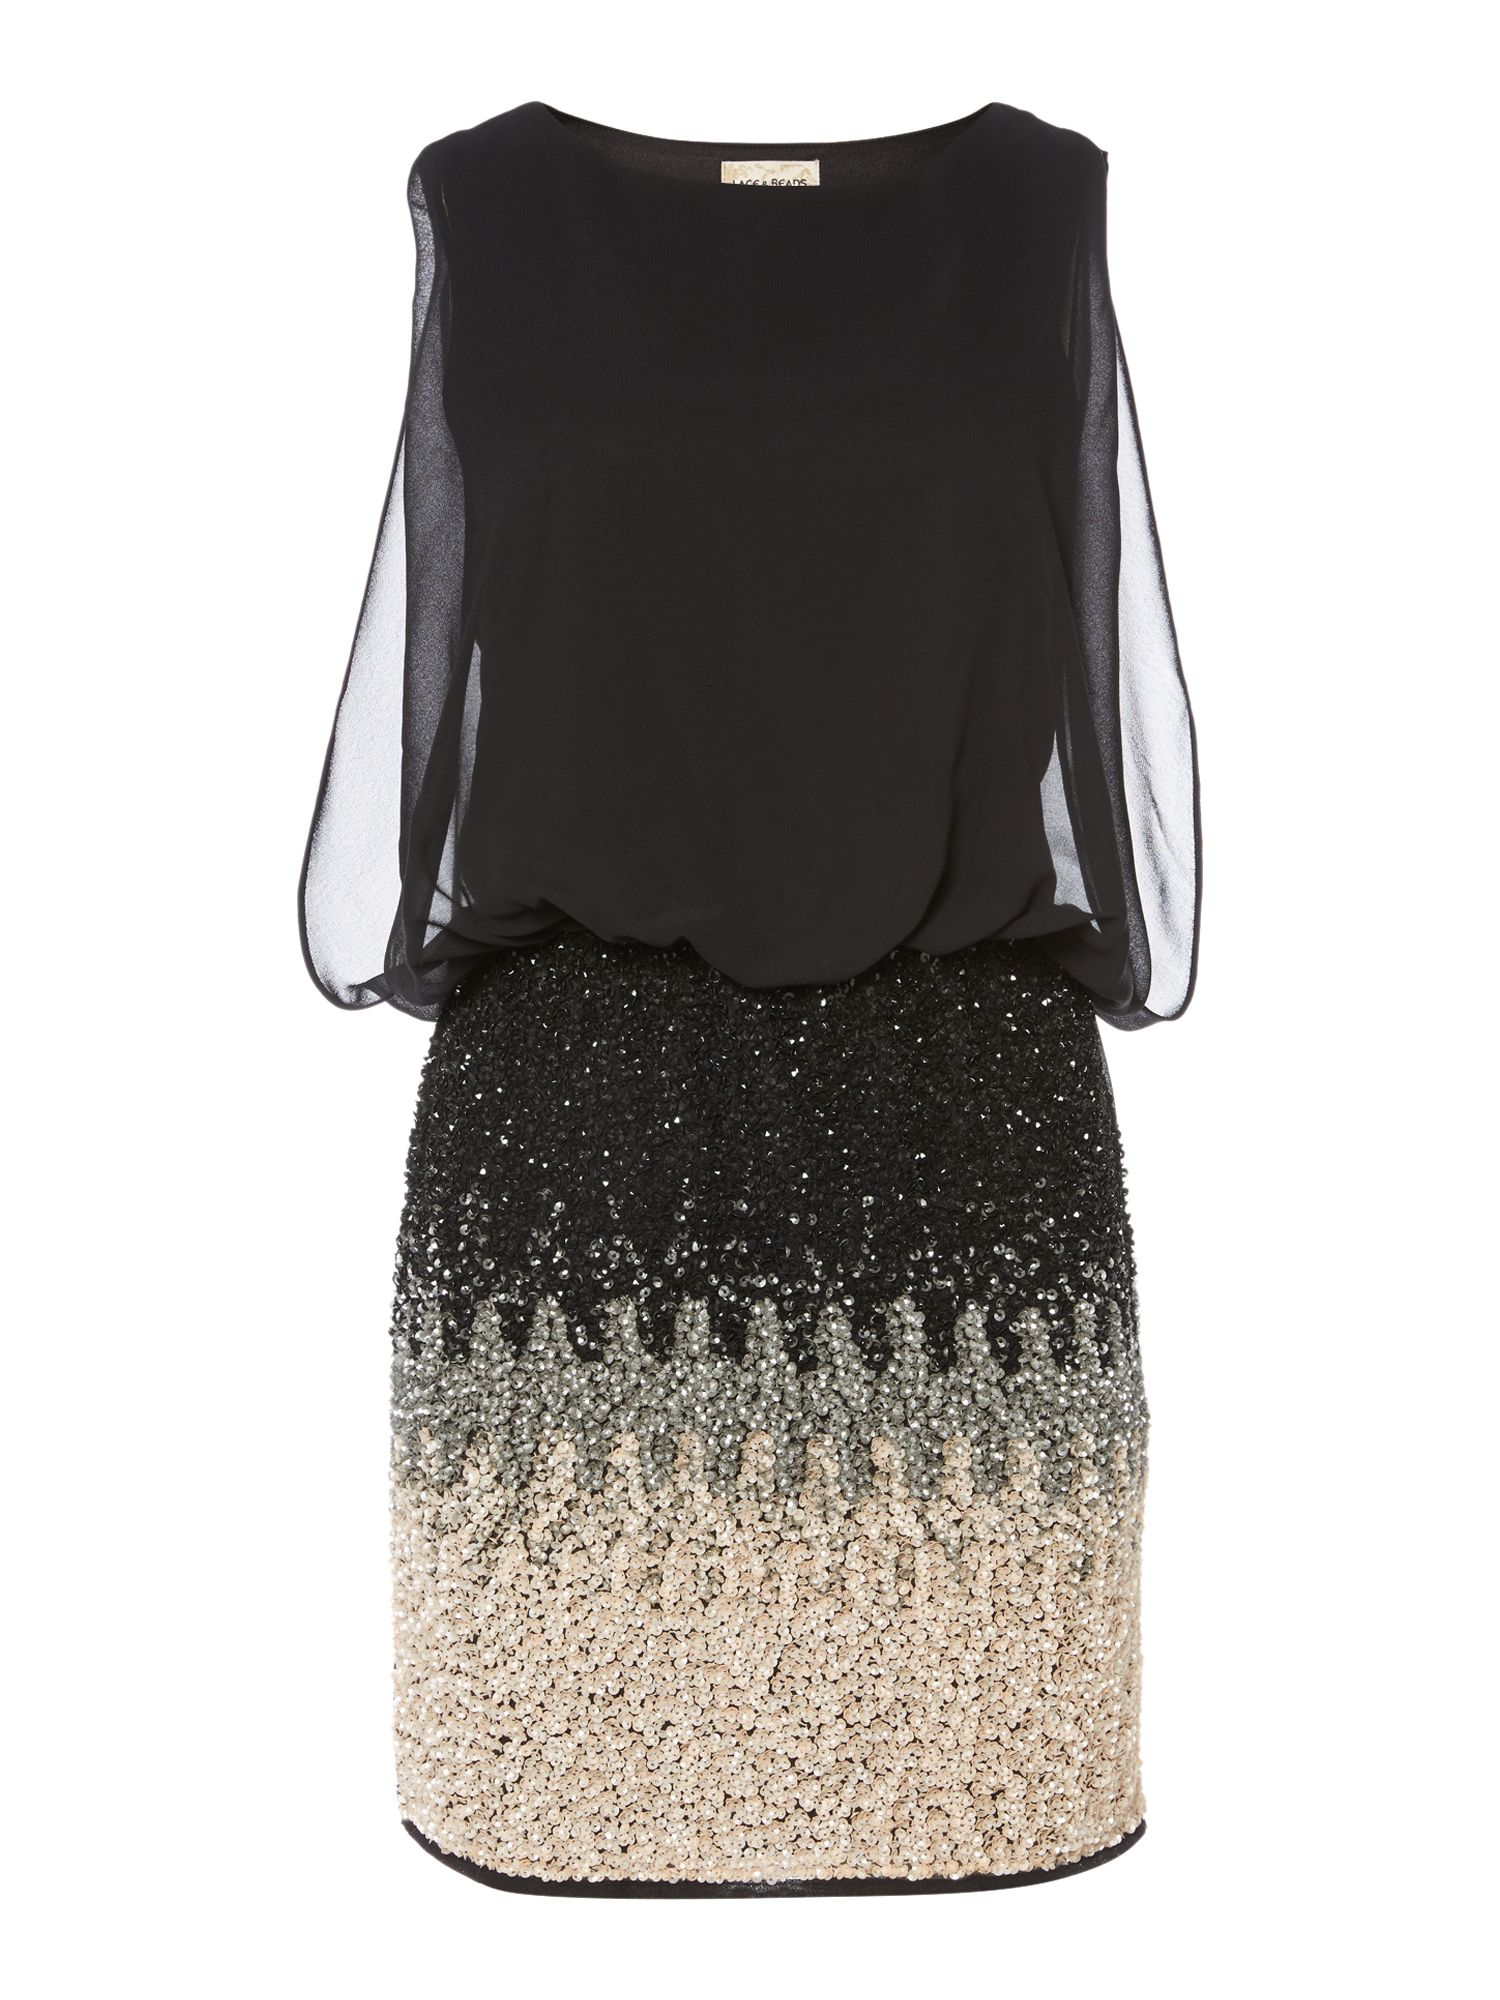 Lace and Beads Lace and Beads Sleeveless Blouson Top Ombre Sequin Skirt Dress, Black